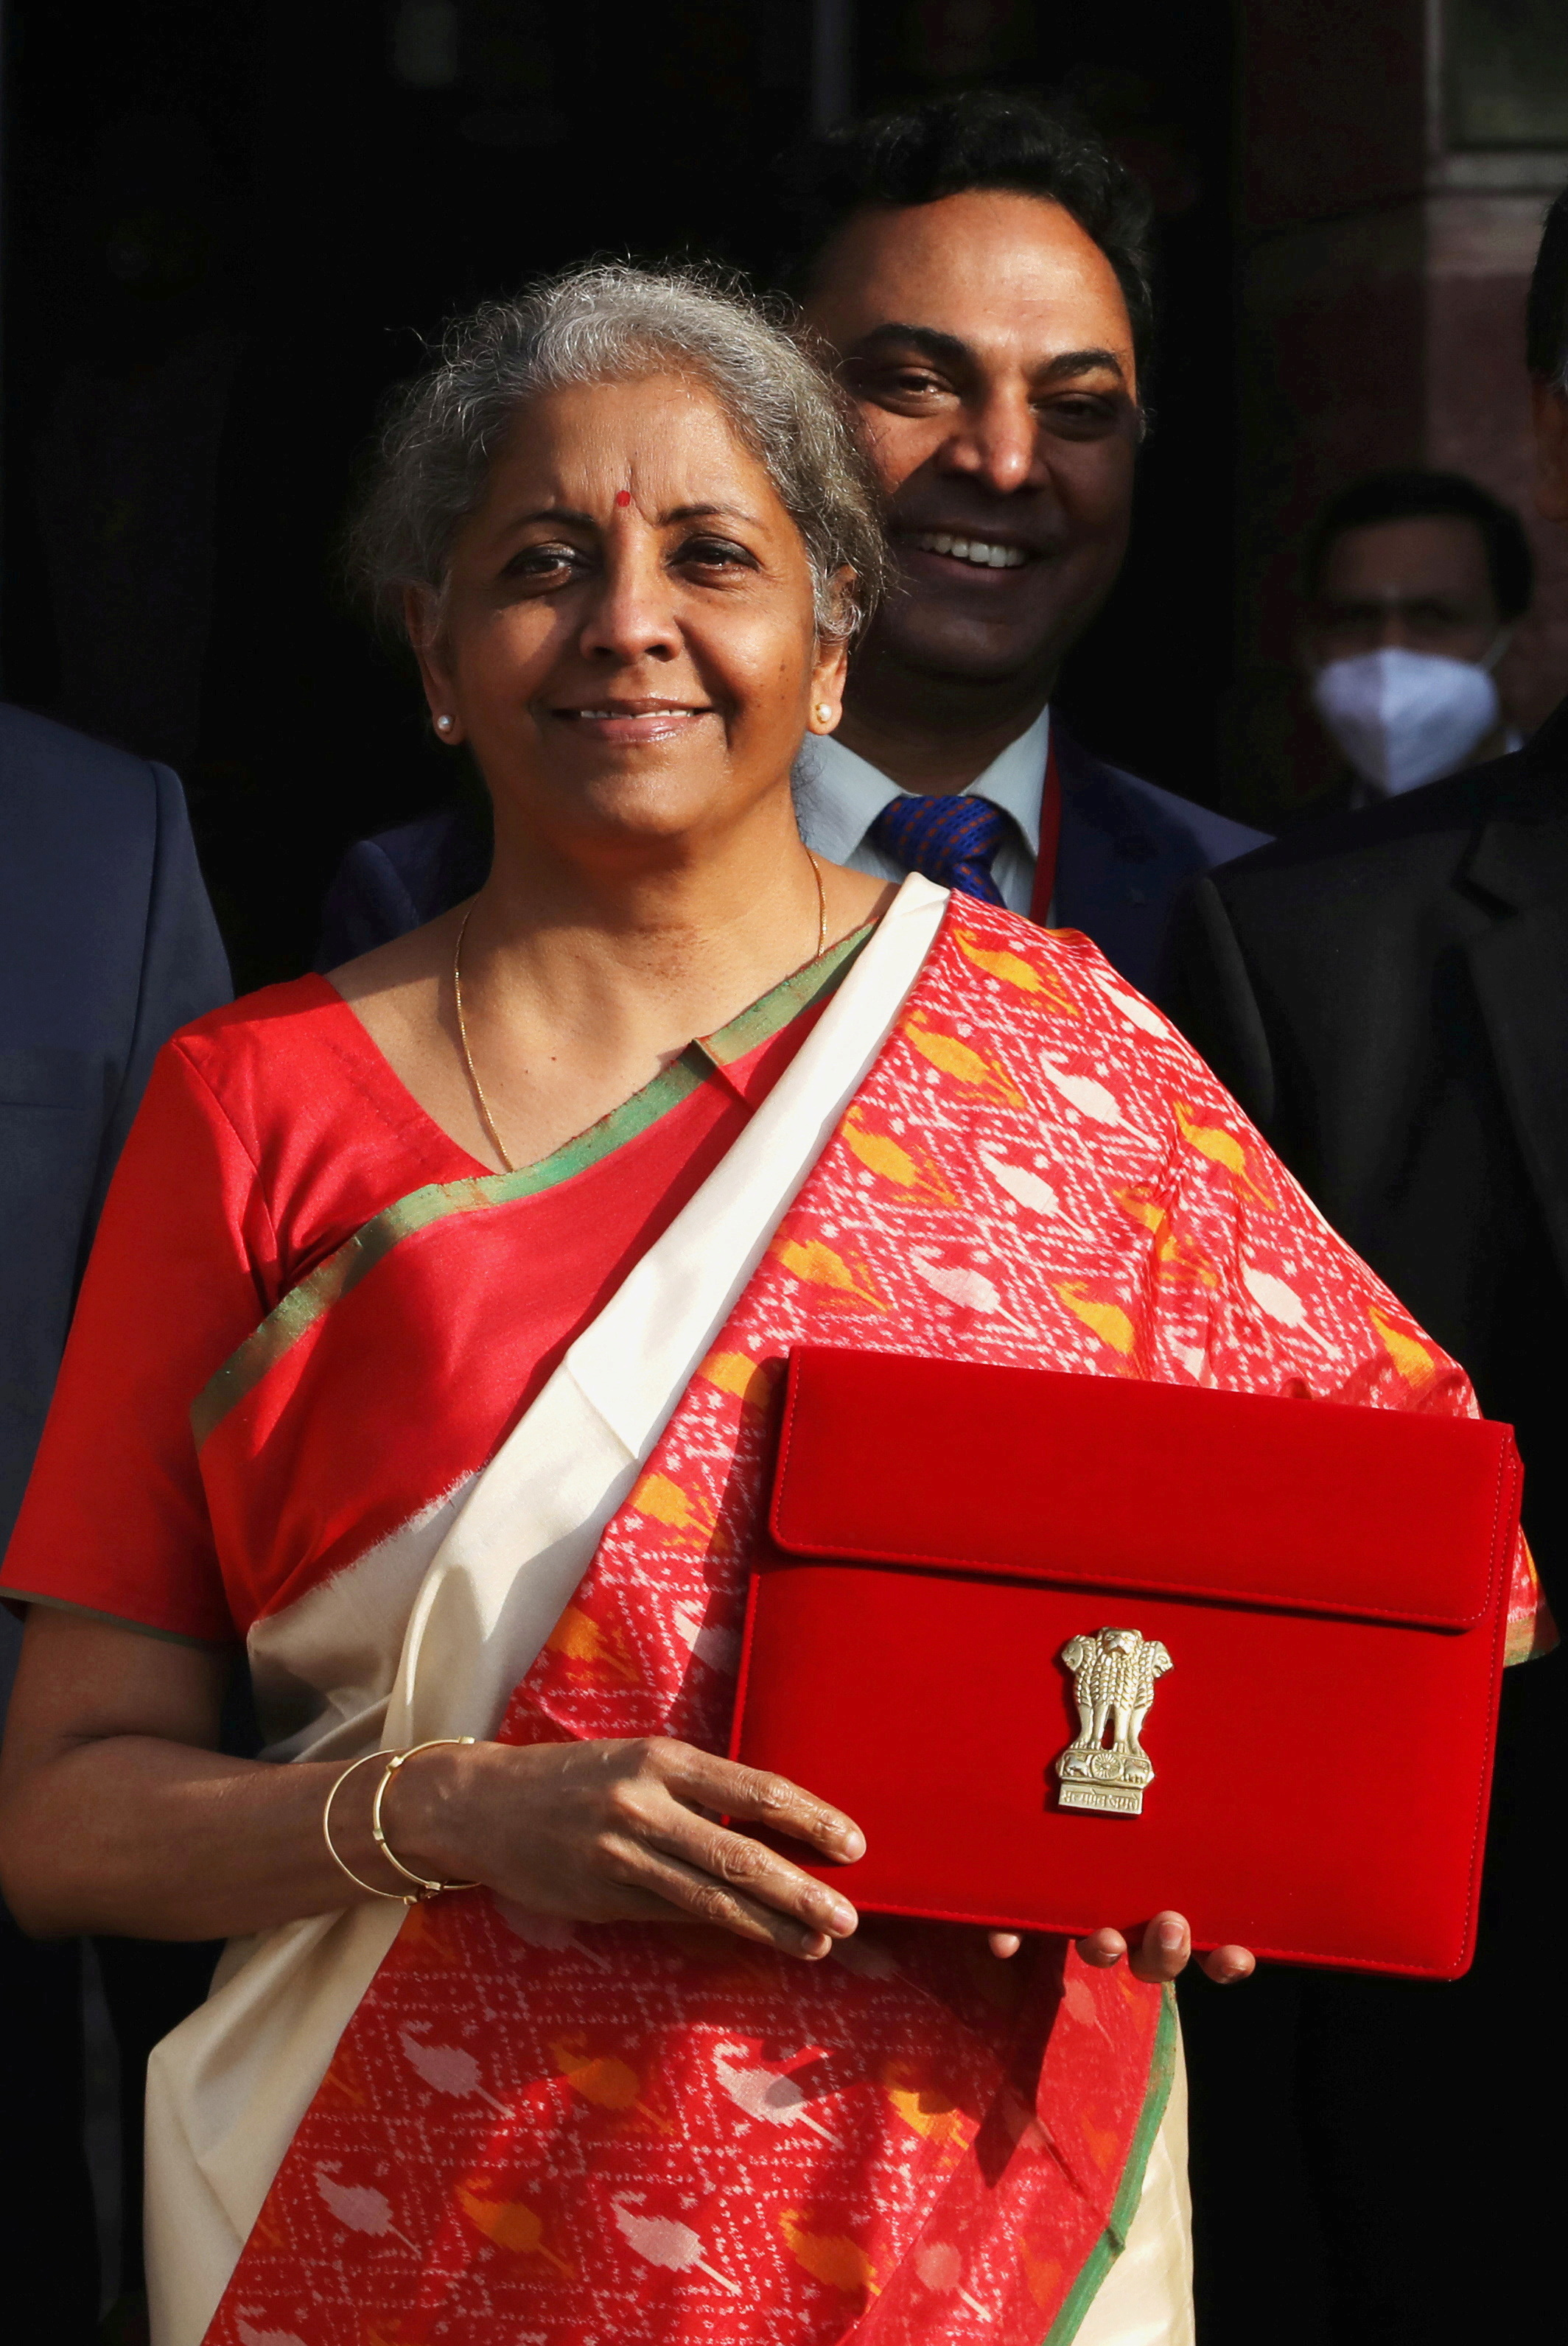 India's Finance Minister Nirmala Sitharaman holds up a folder with the Government of India logo, while India's Chief Economic Advisor Krishnamurthy Subramanian looks on (at rear), as she leaves her office to present the federal budget in the parliament in New Delhi, India, February 1, 2021. REUTERS/Anushree Fadnavis/File Photo